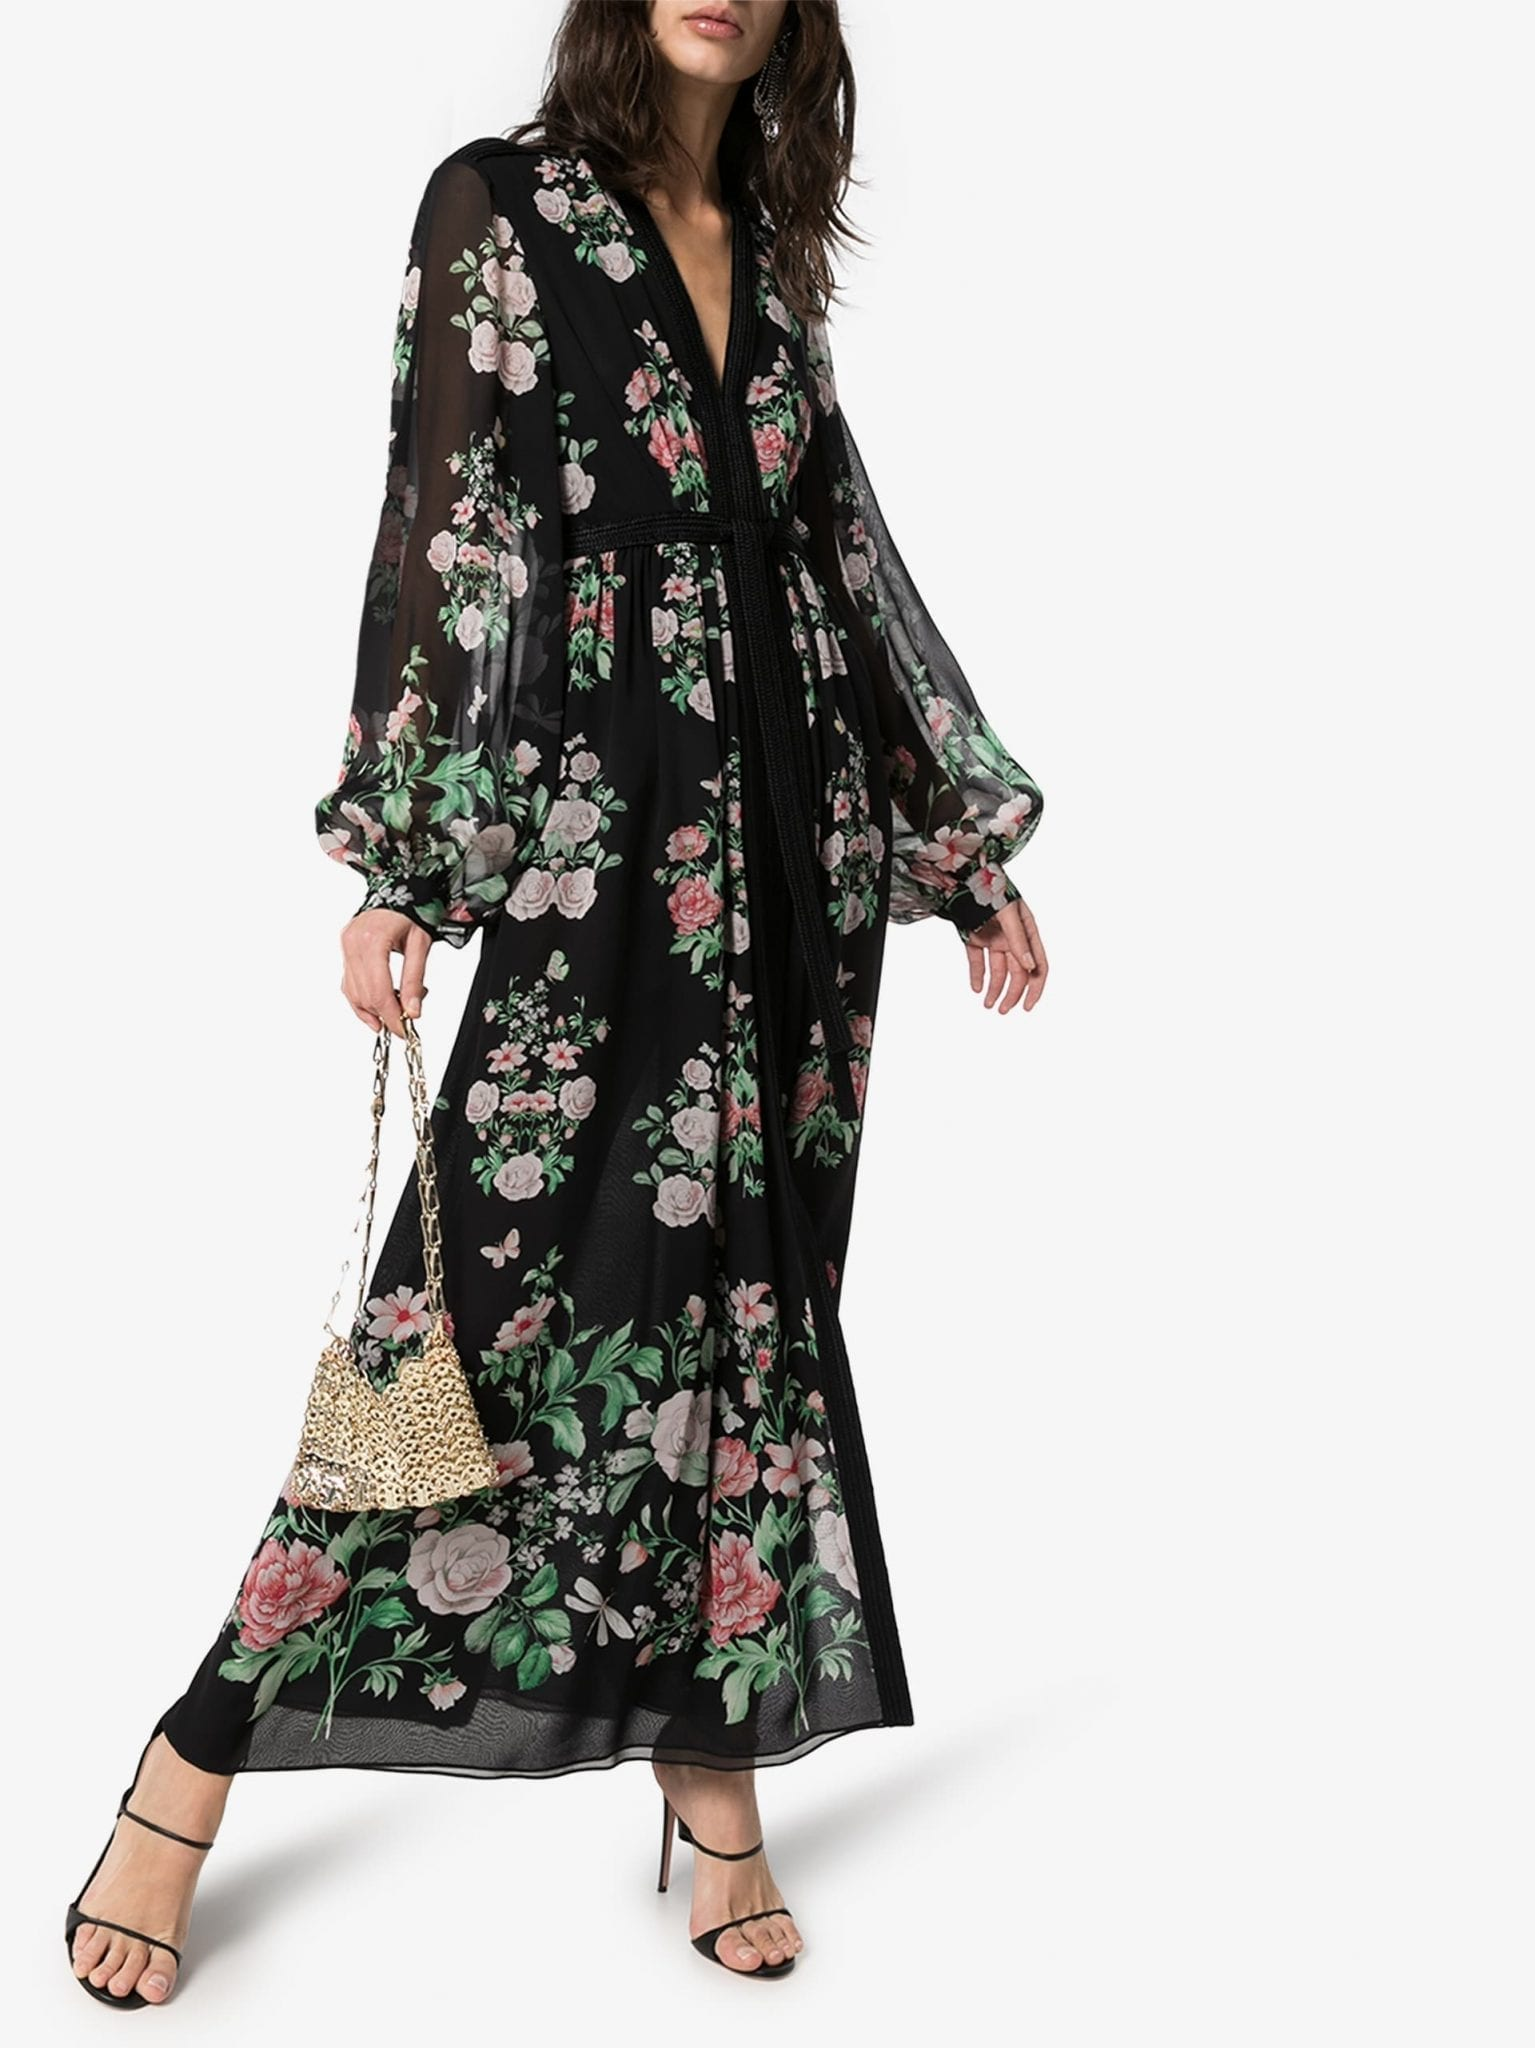 GIAMBATTISTA VALLI Floral Print Silk Maxi Dress